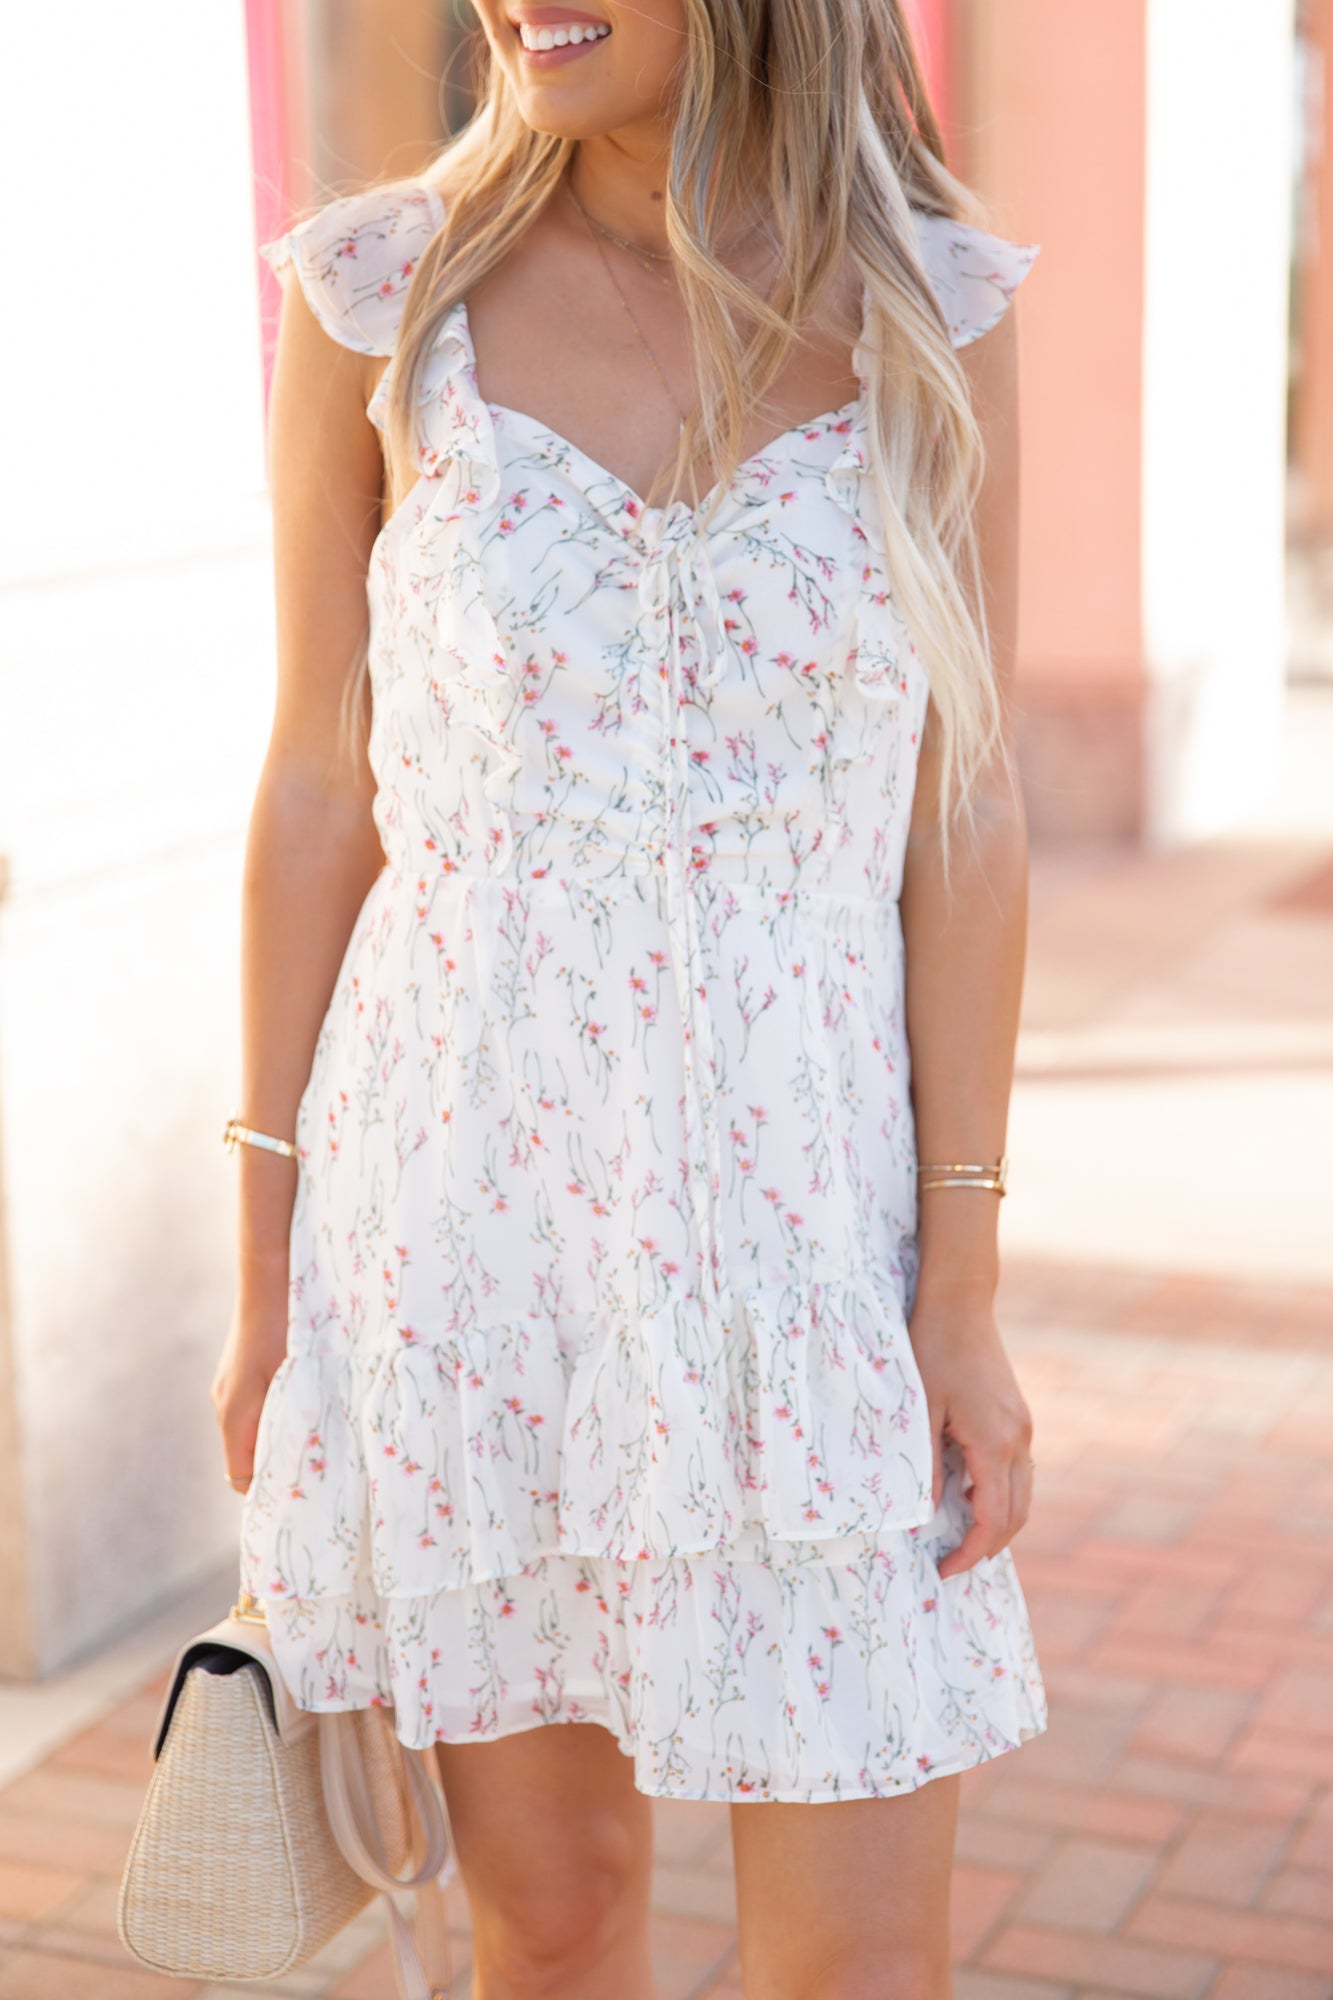 Cindy Floral Sundress - llacie